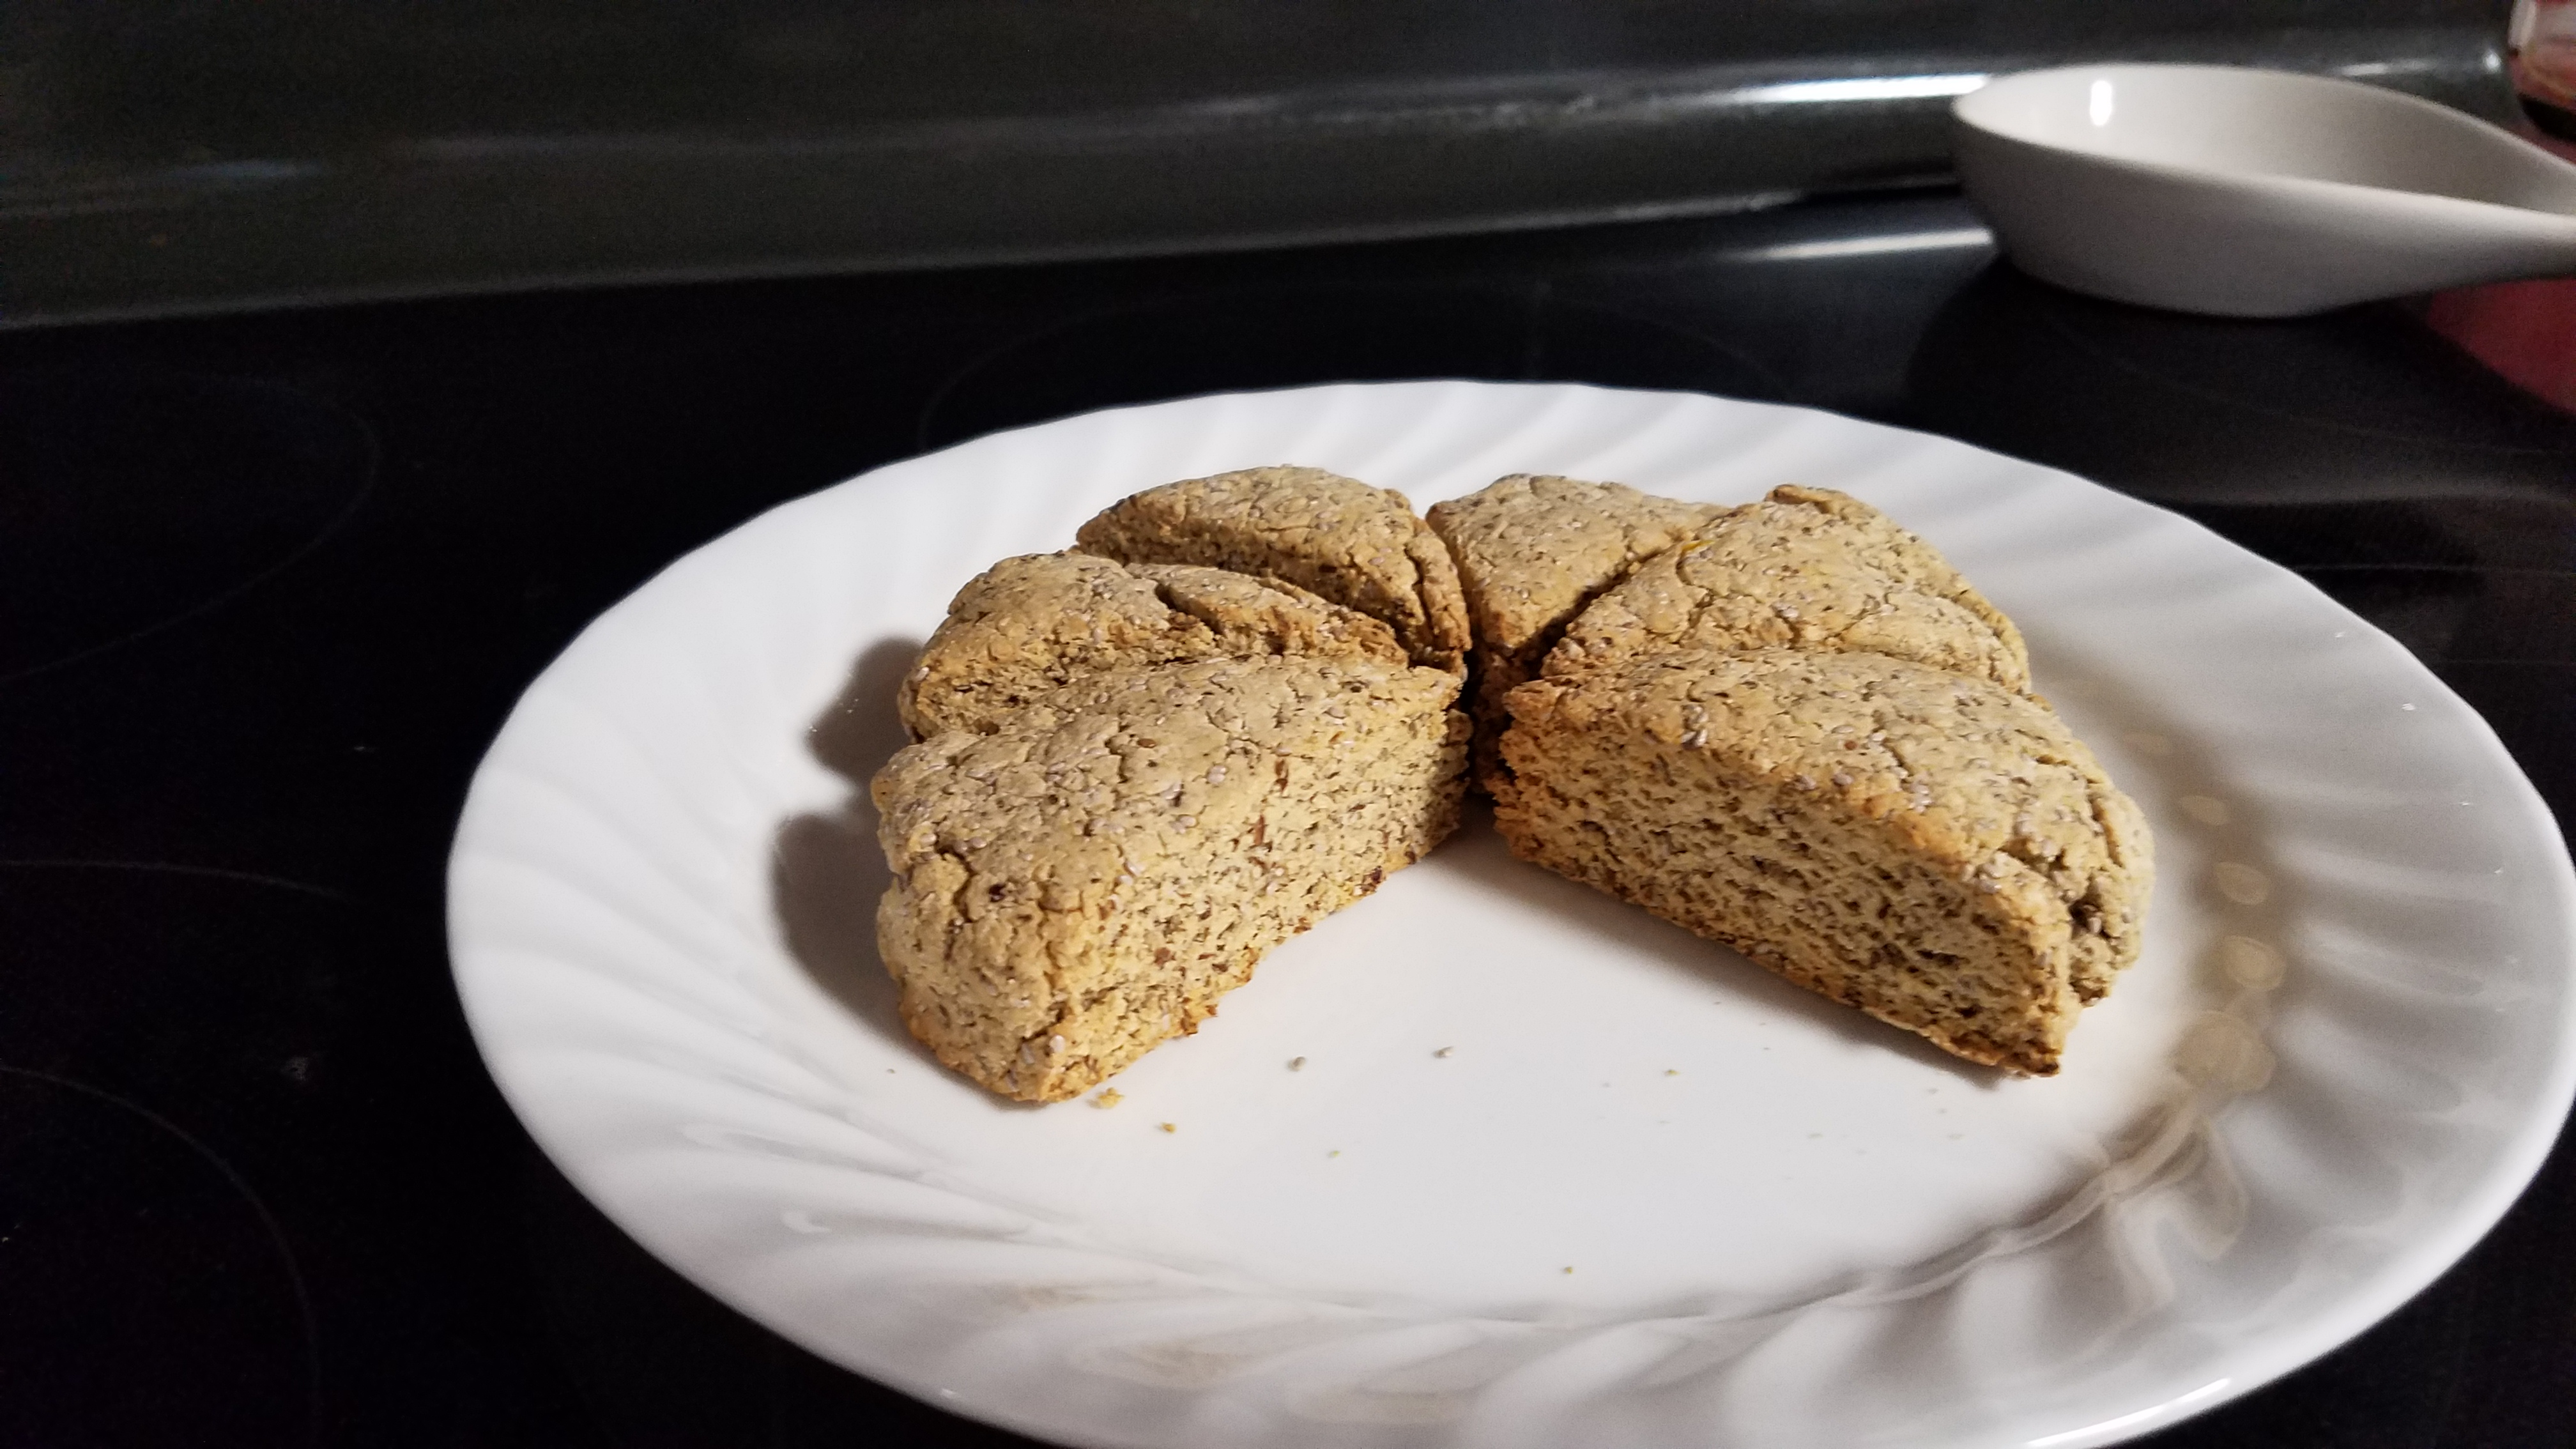 Lemon Poppy Seed Scones (Gluten Free, Dairy Free, and Vegan)